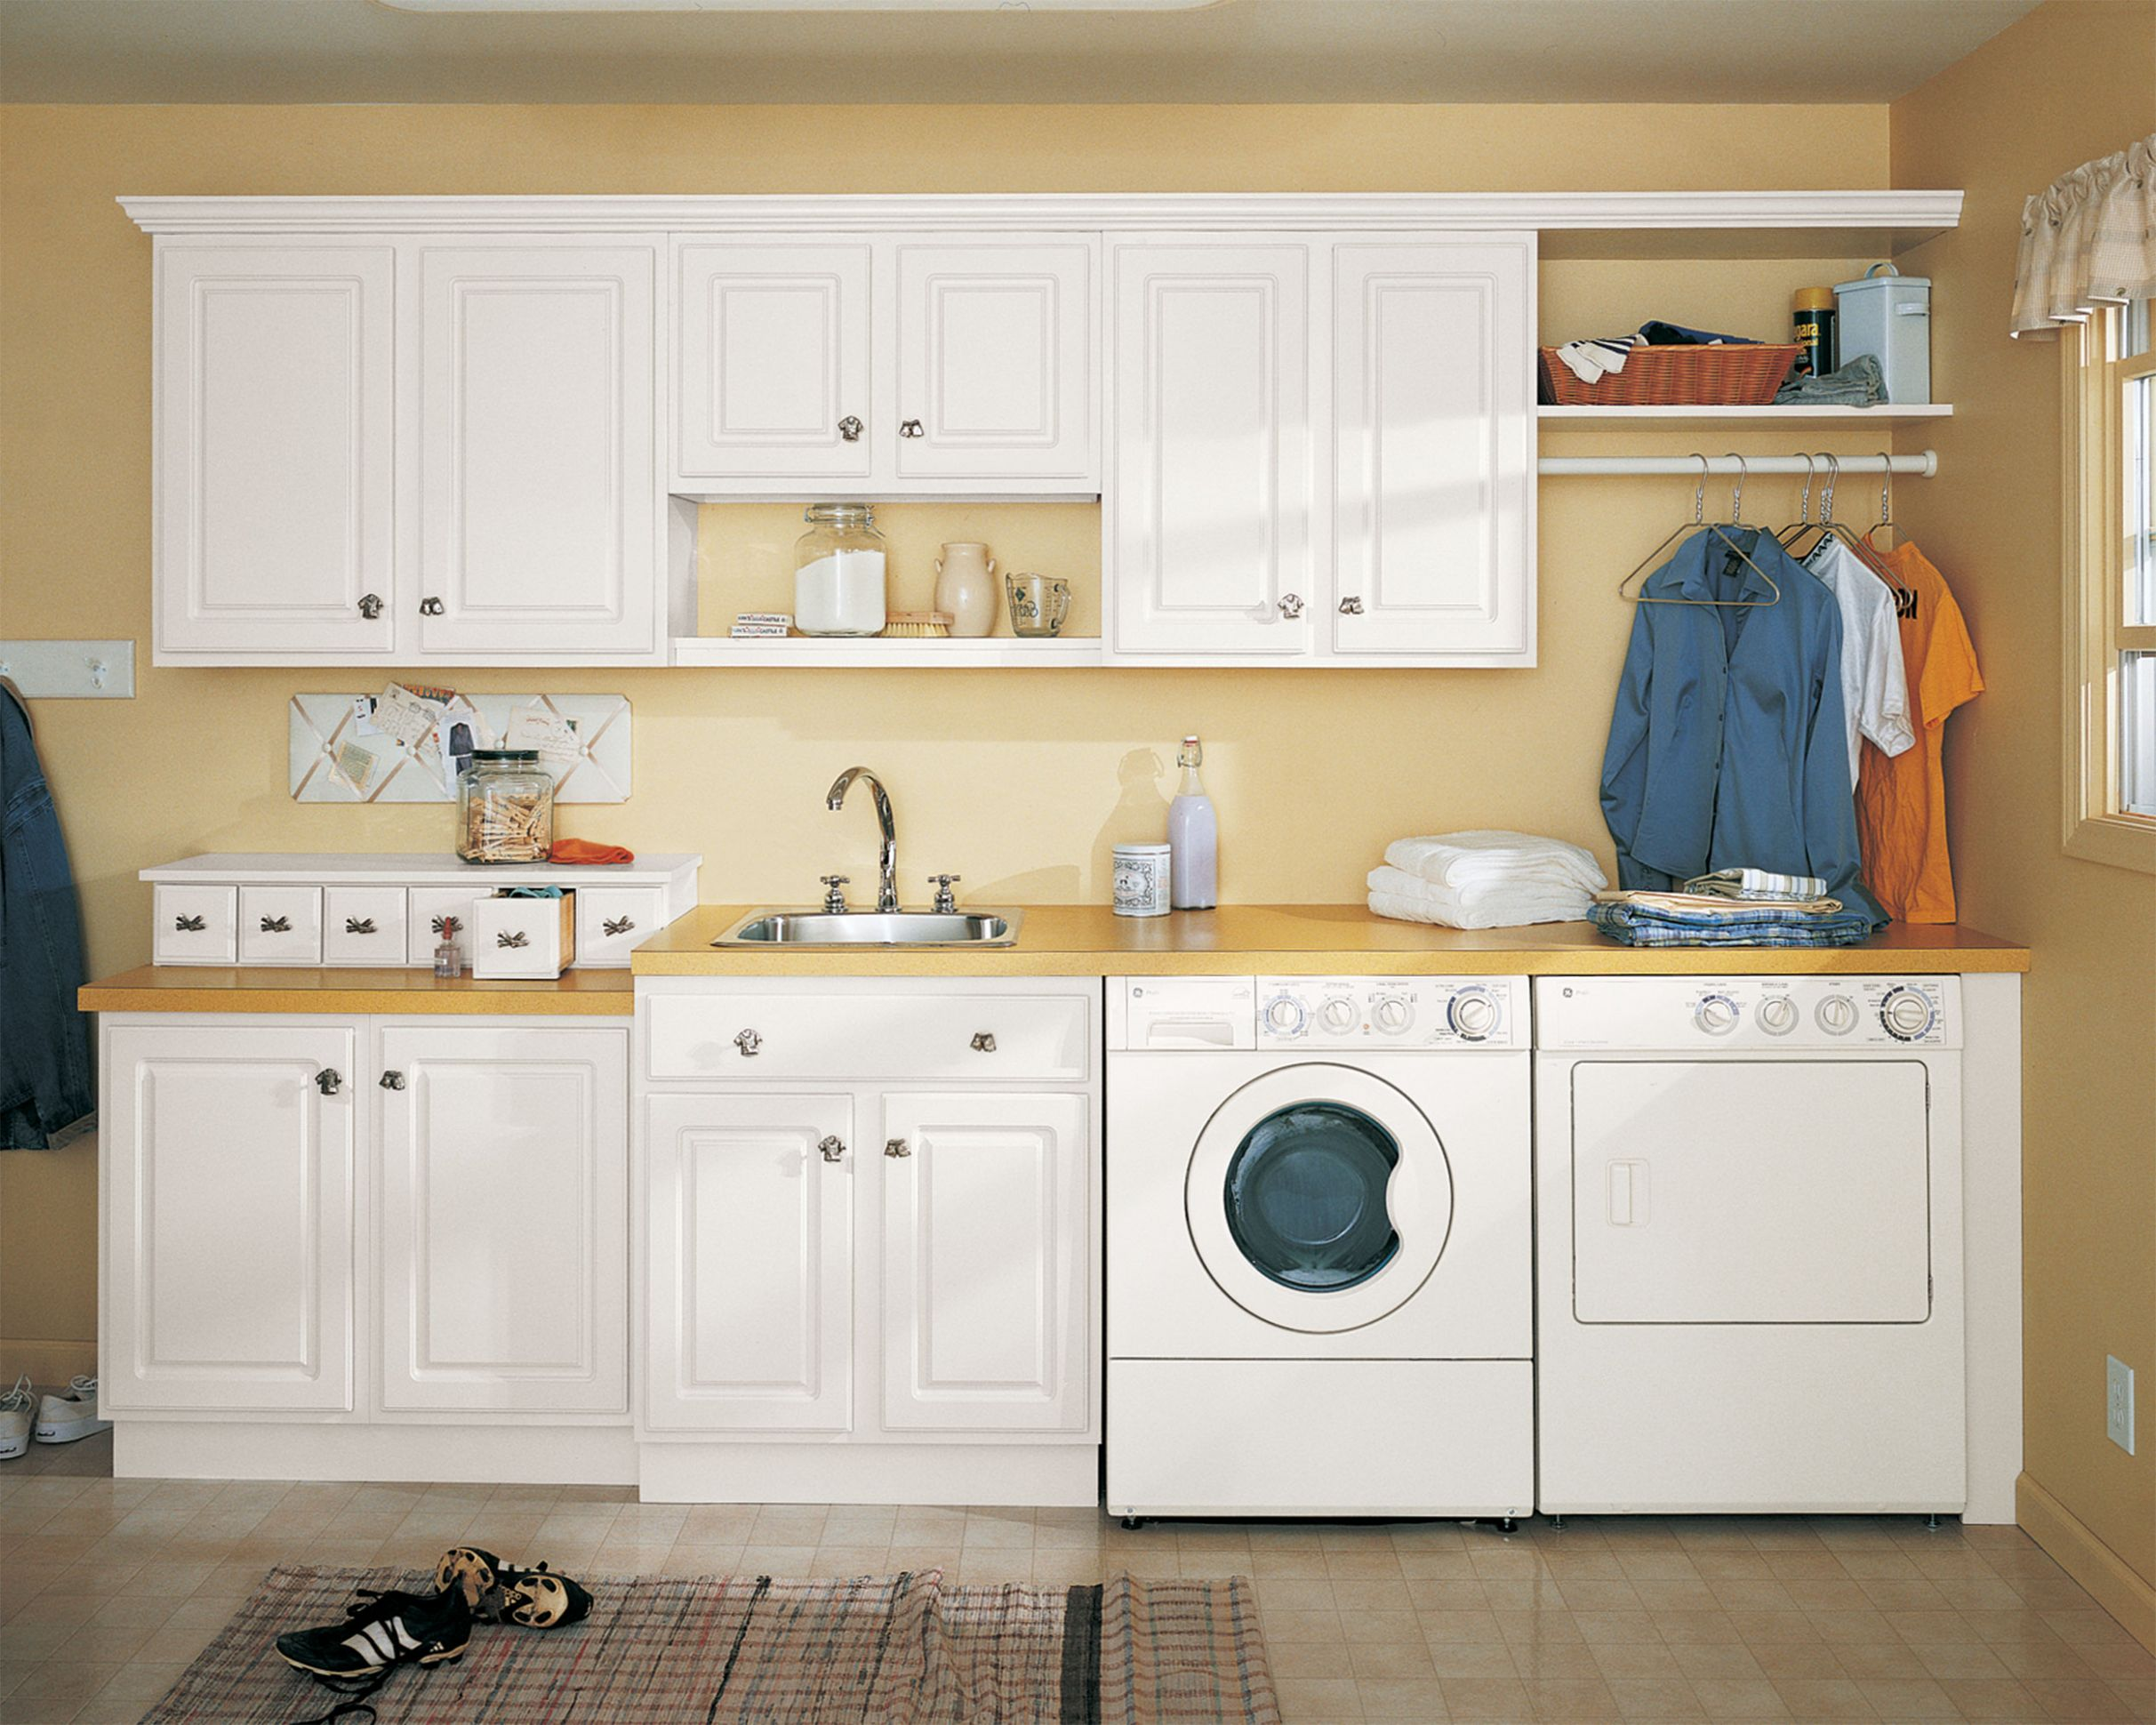 Laundry Room Decor Ideas On A Budget Pictures Decorating Vintage ..